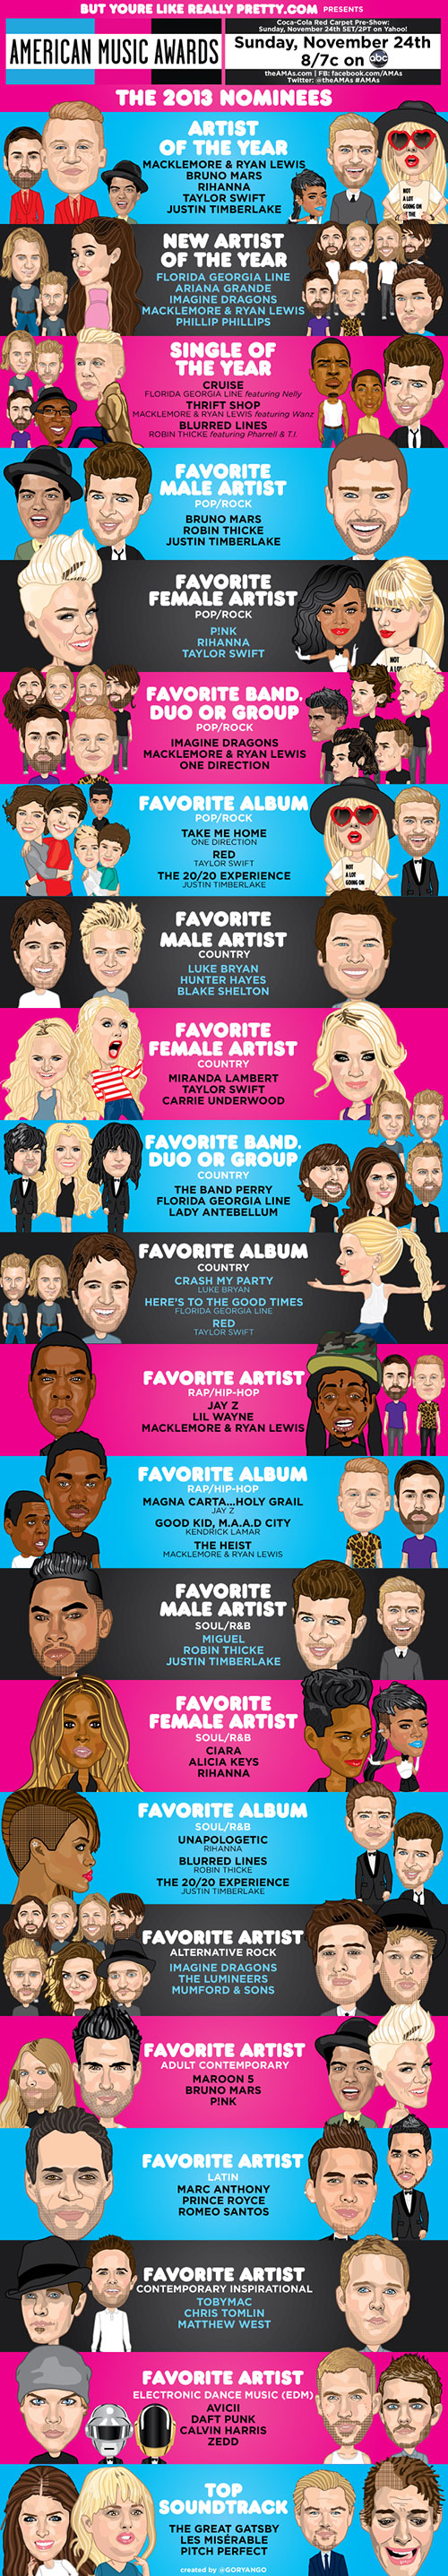 ama-nominees-infographic